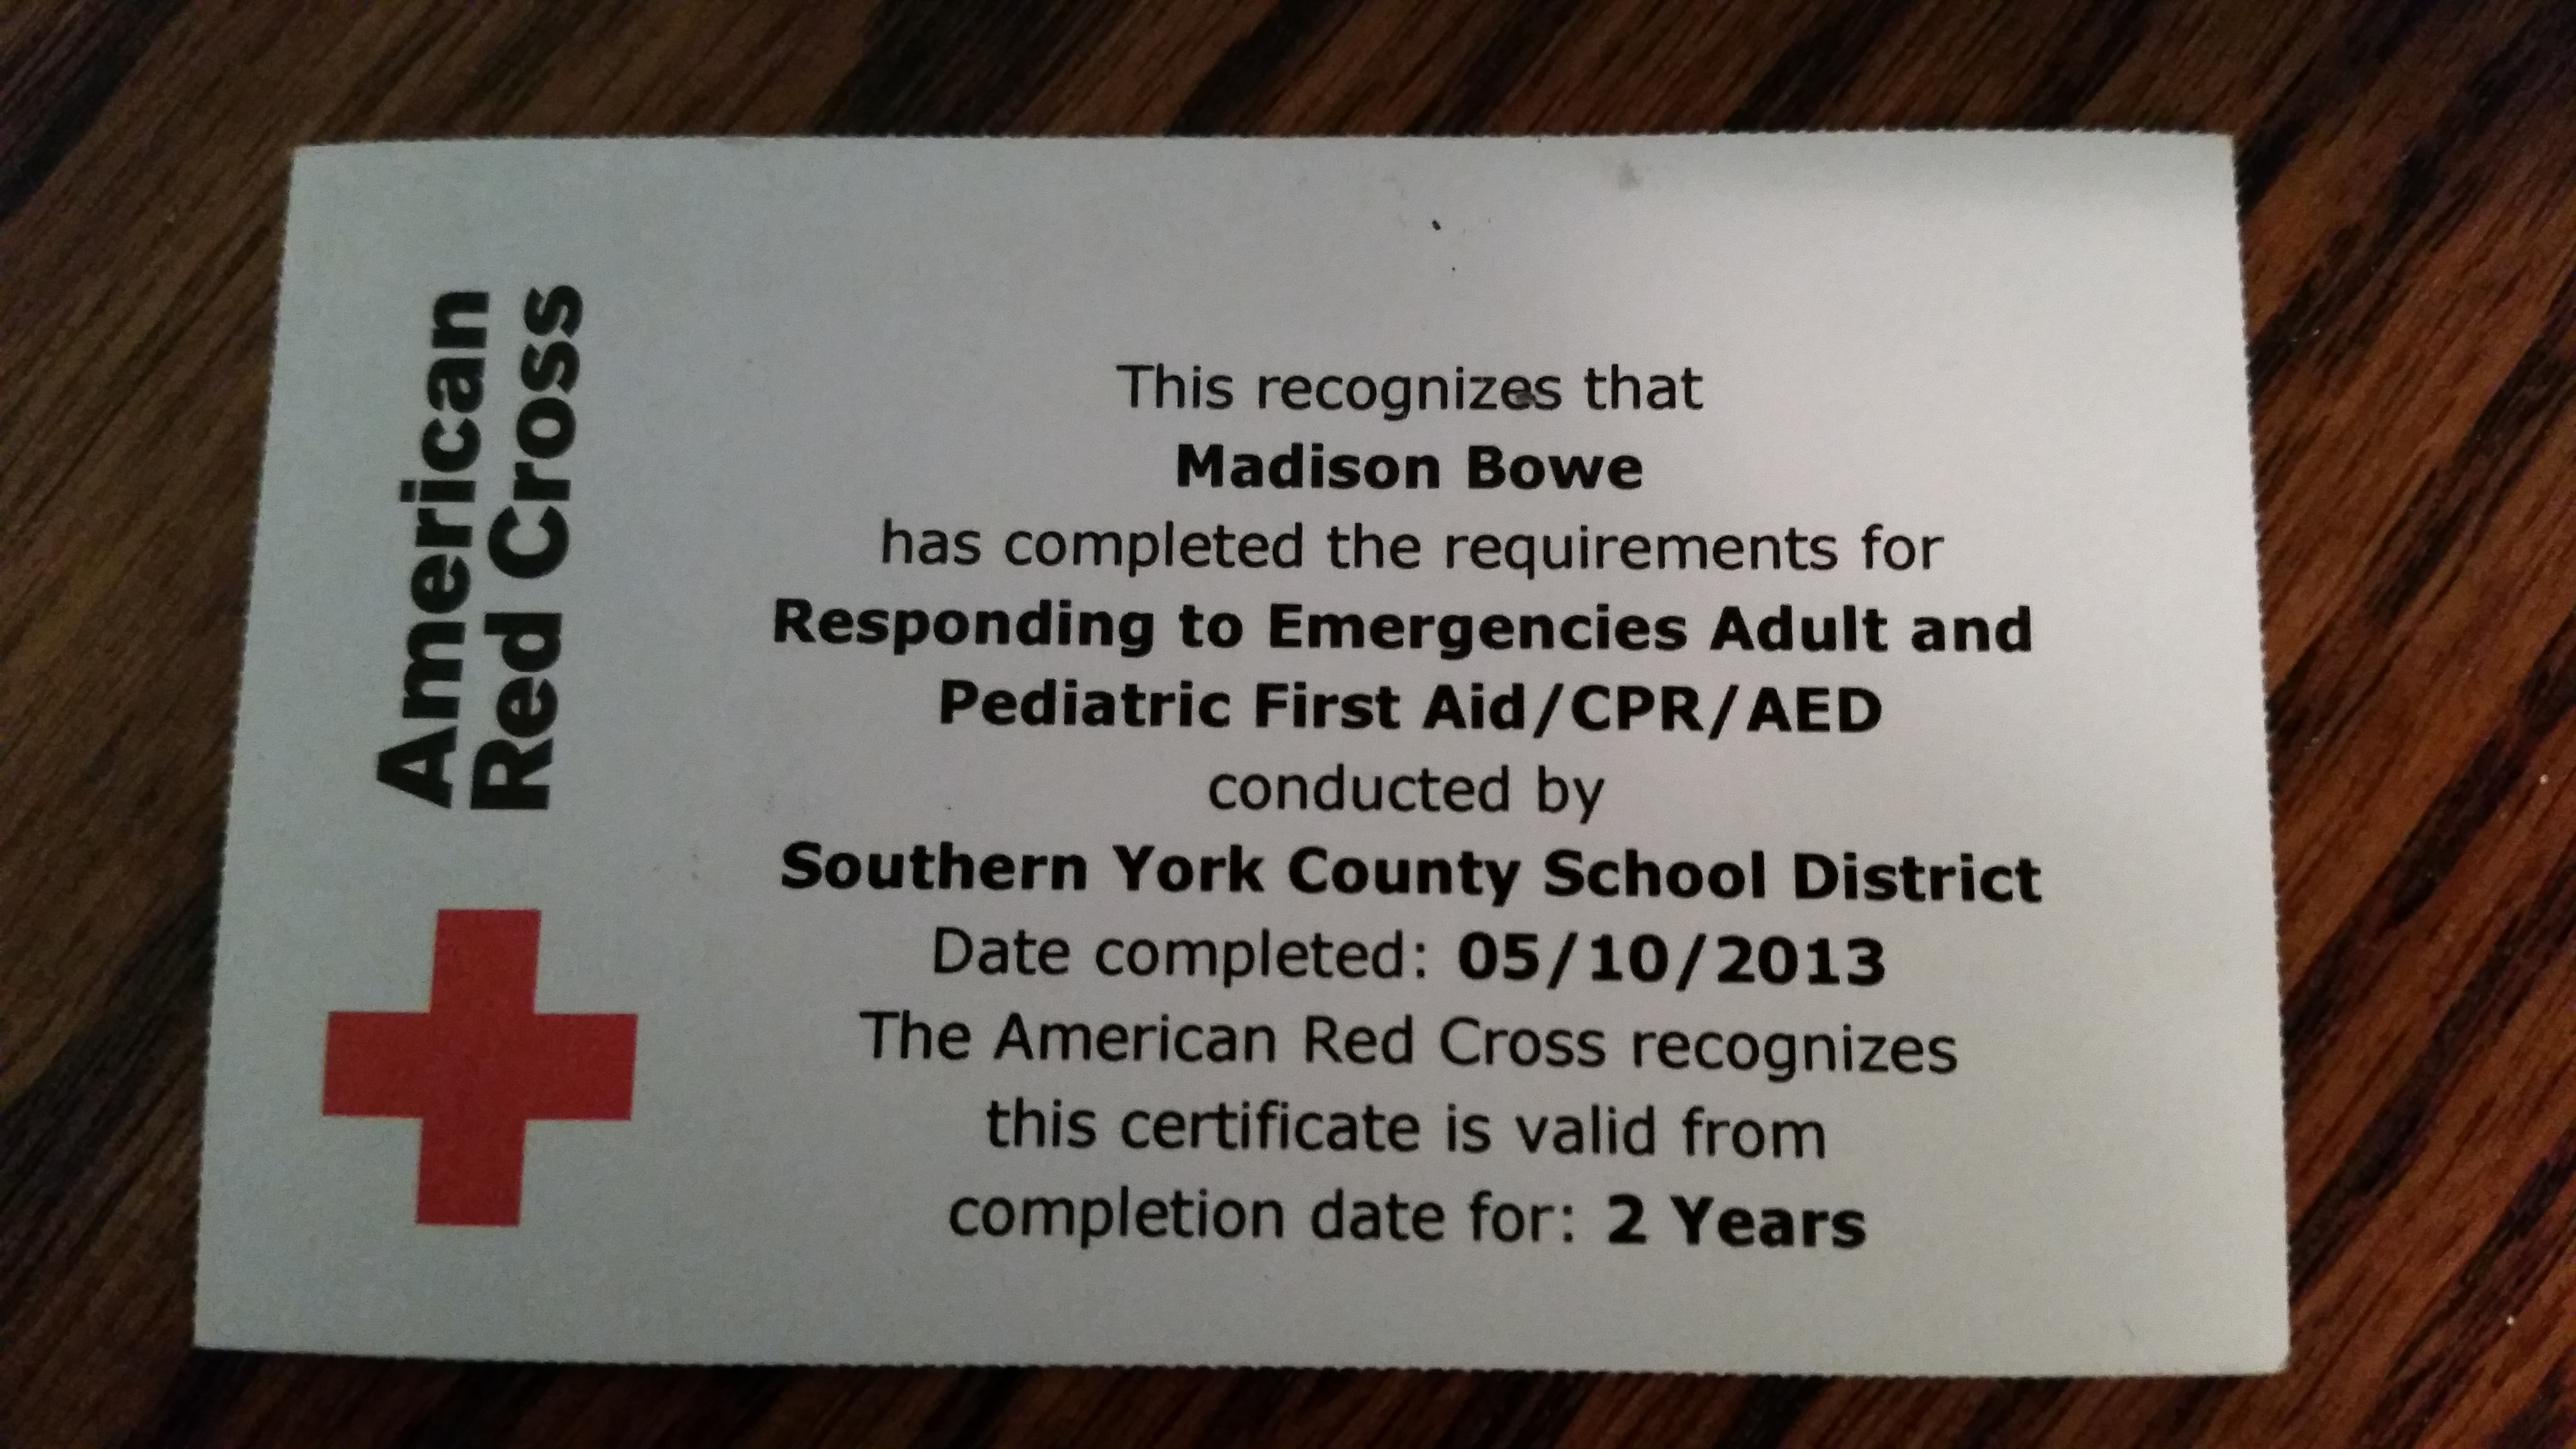 American red cross portfolio first aid and cpr certification card from the american red cross to madison bowe 1betcityfo Image collections